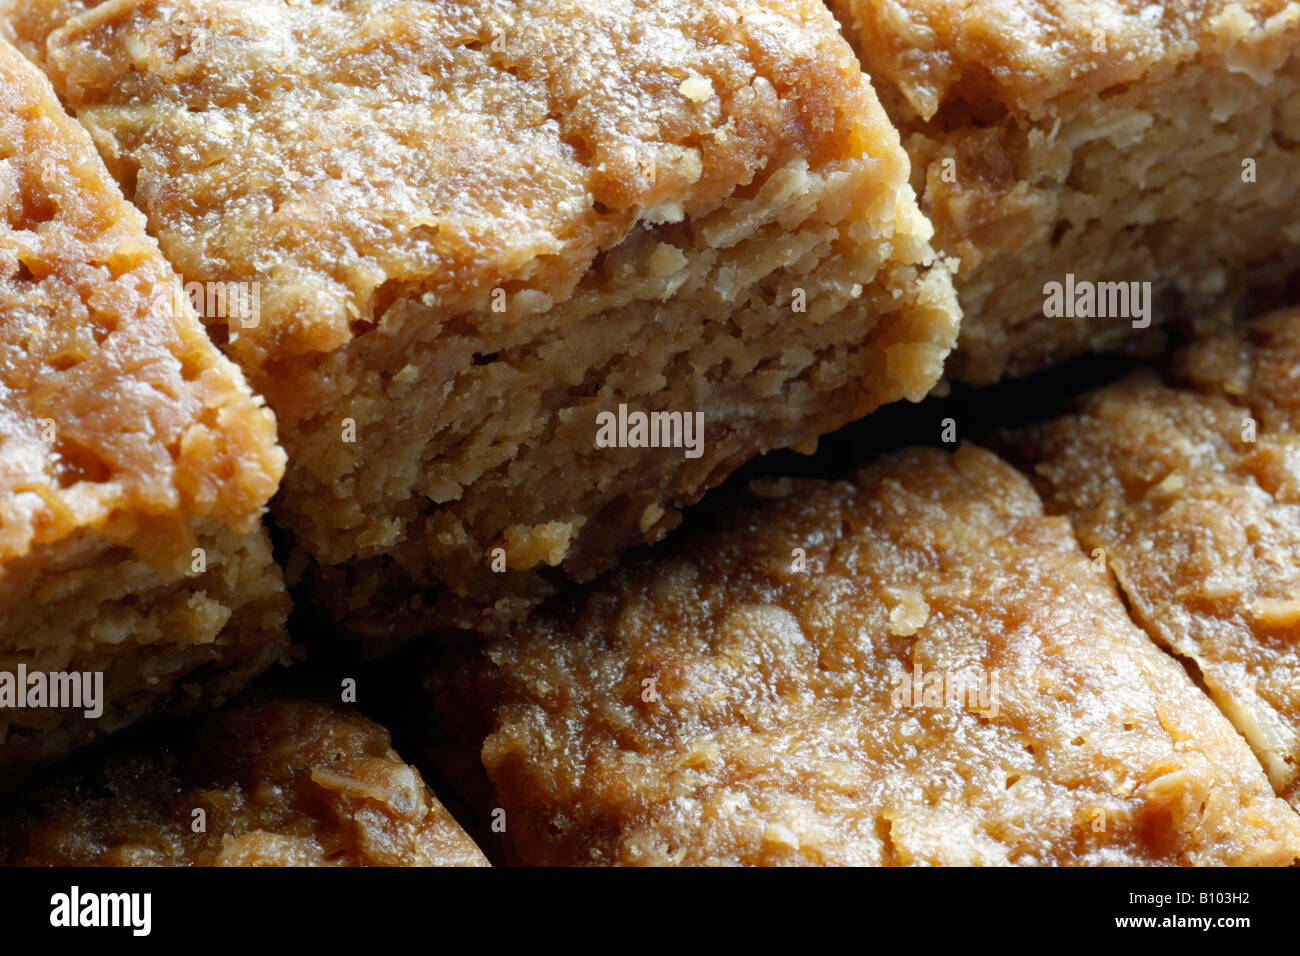 A macro or close up image of freshly baked flapjacks squares sliced and ready to eat - Stock Image